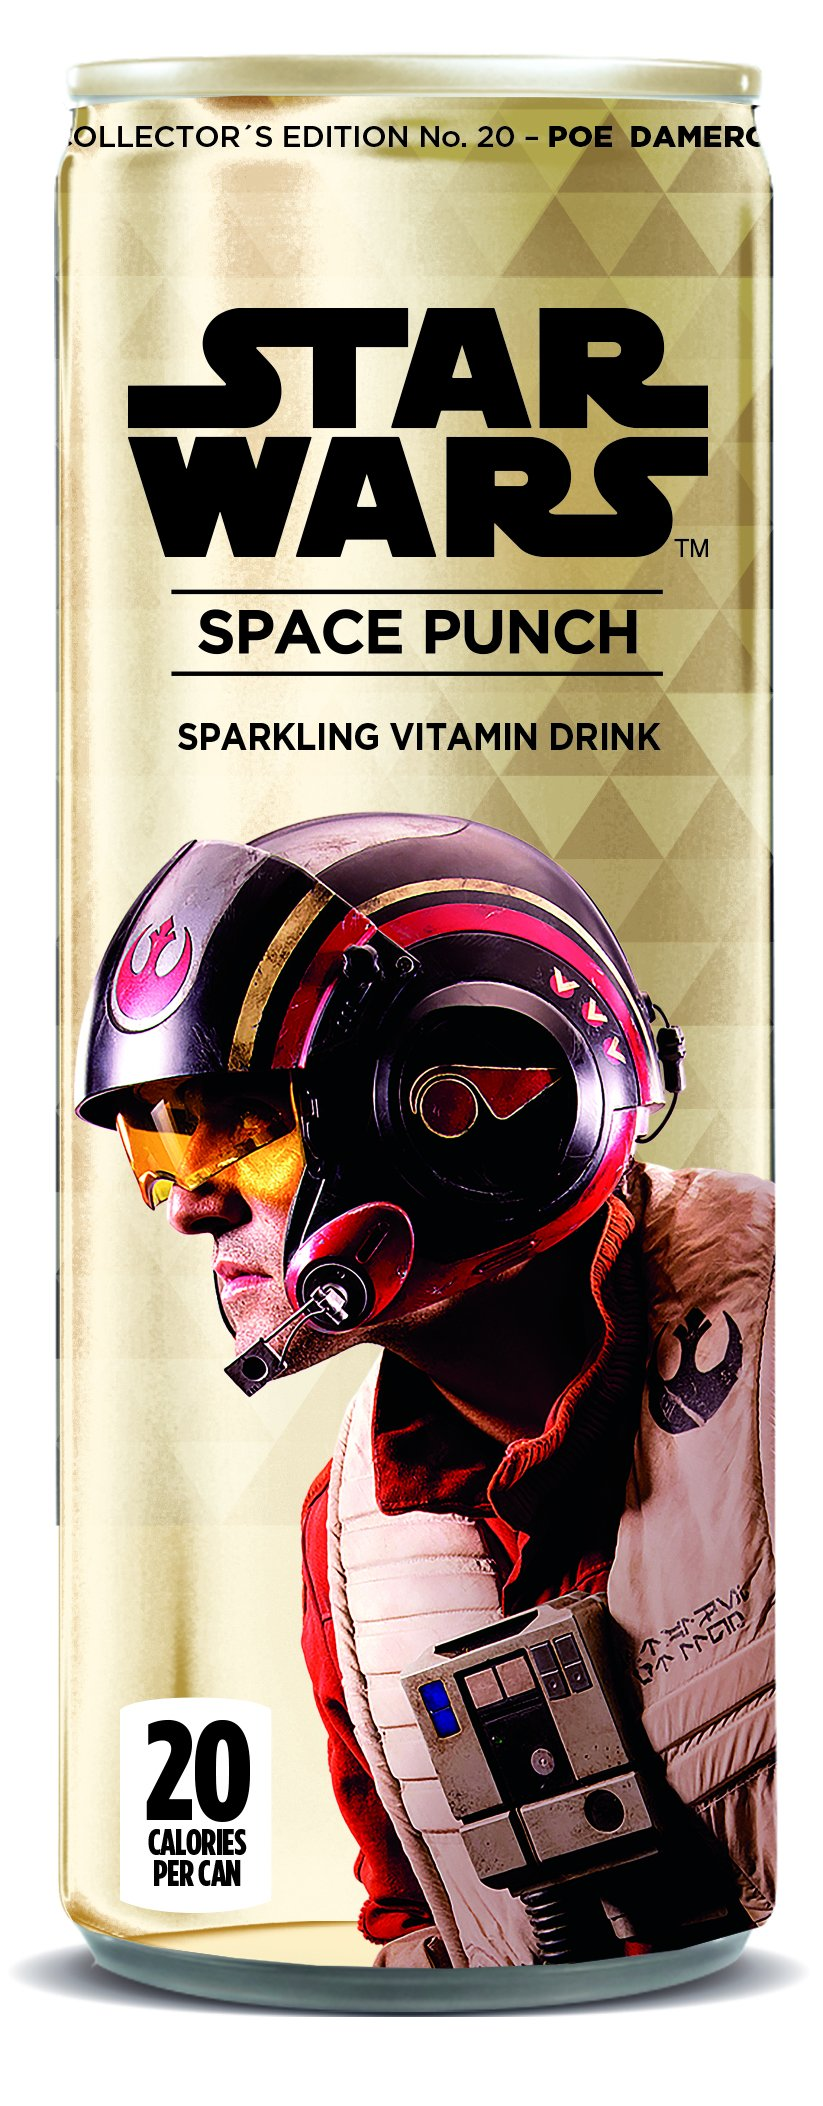 Star Wars Space Punch Sparkling Vitamin Drink, Collectors Edition No.18 - Poe Dameron Classic, 12 Oz. Cans (Pack of 12)